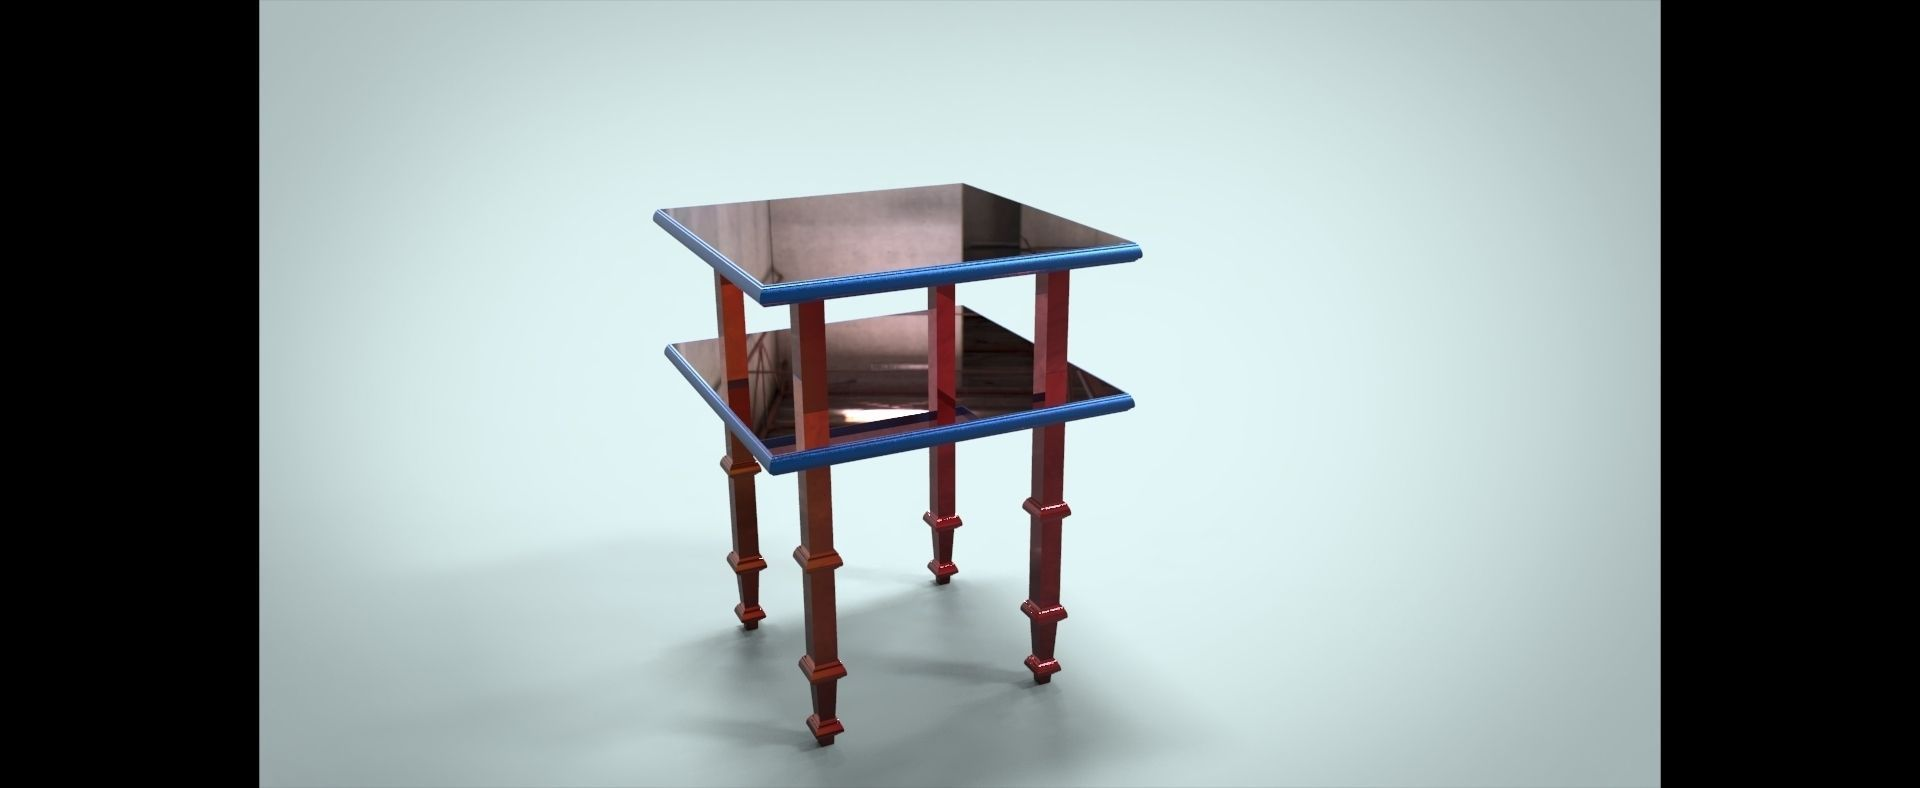 Side table 3d model game ready max stl dwg sldprt for Transmutation table 85 items